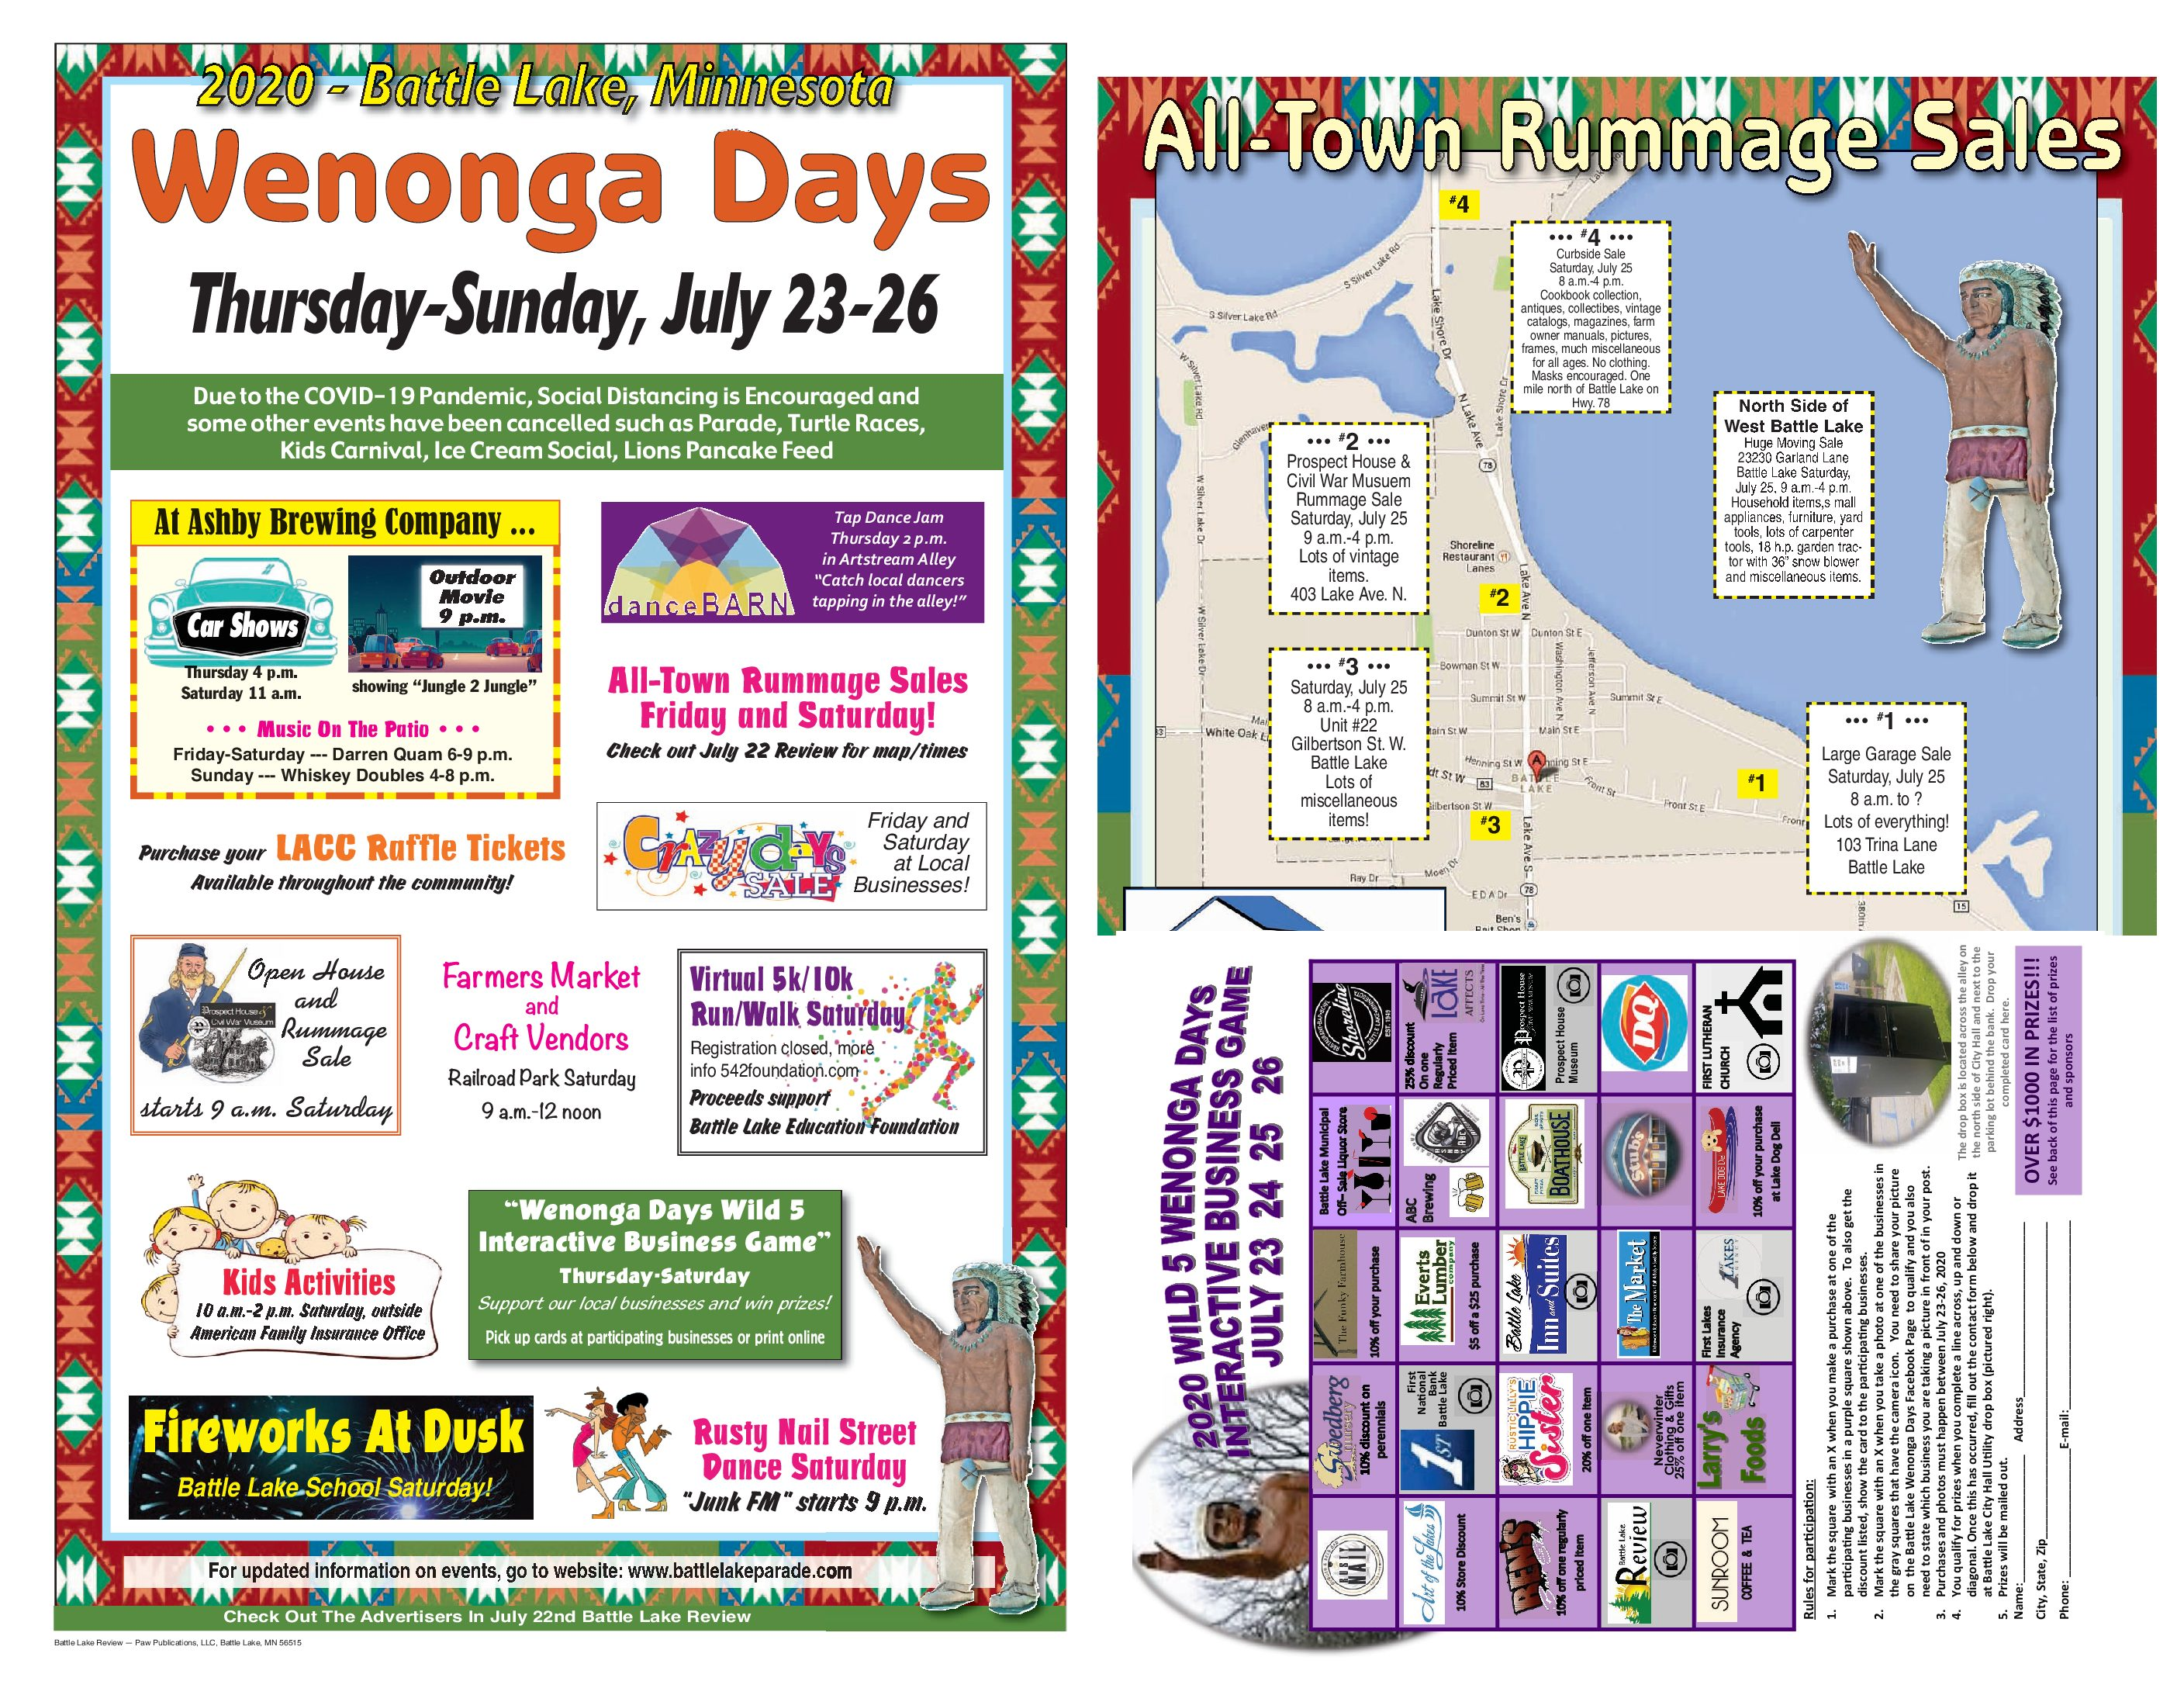 Wenonga Days Events, All-City Rummage, Wild Card Game